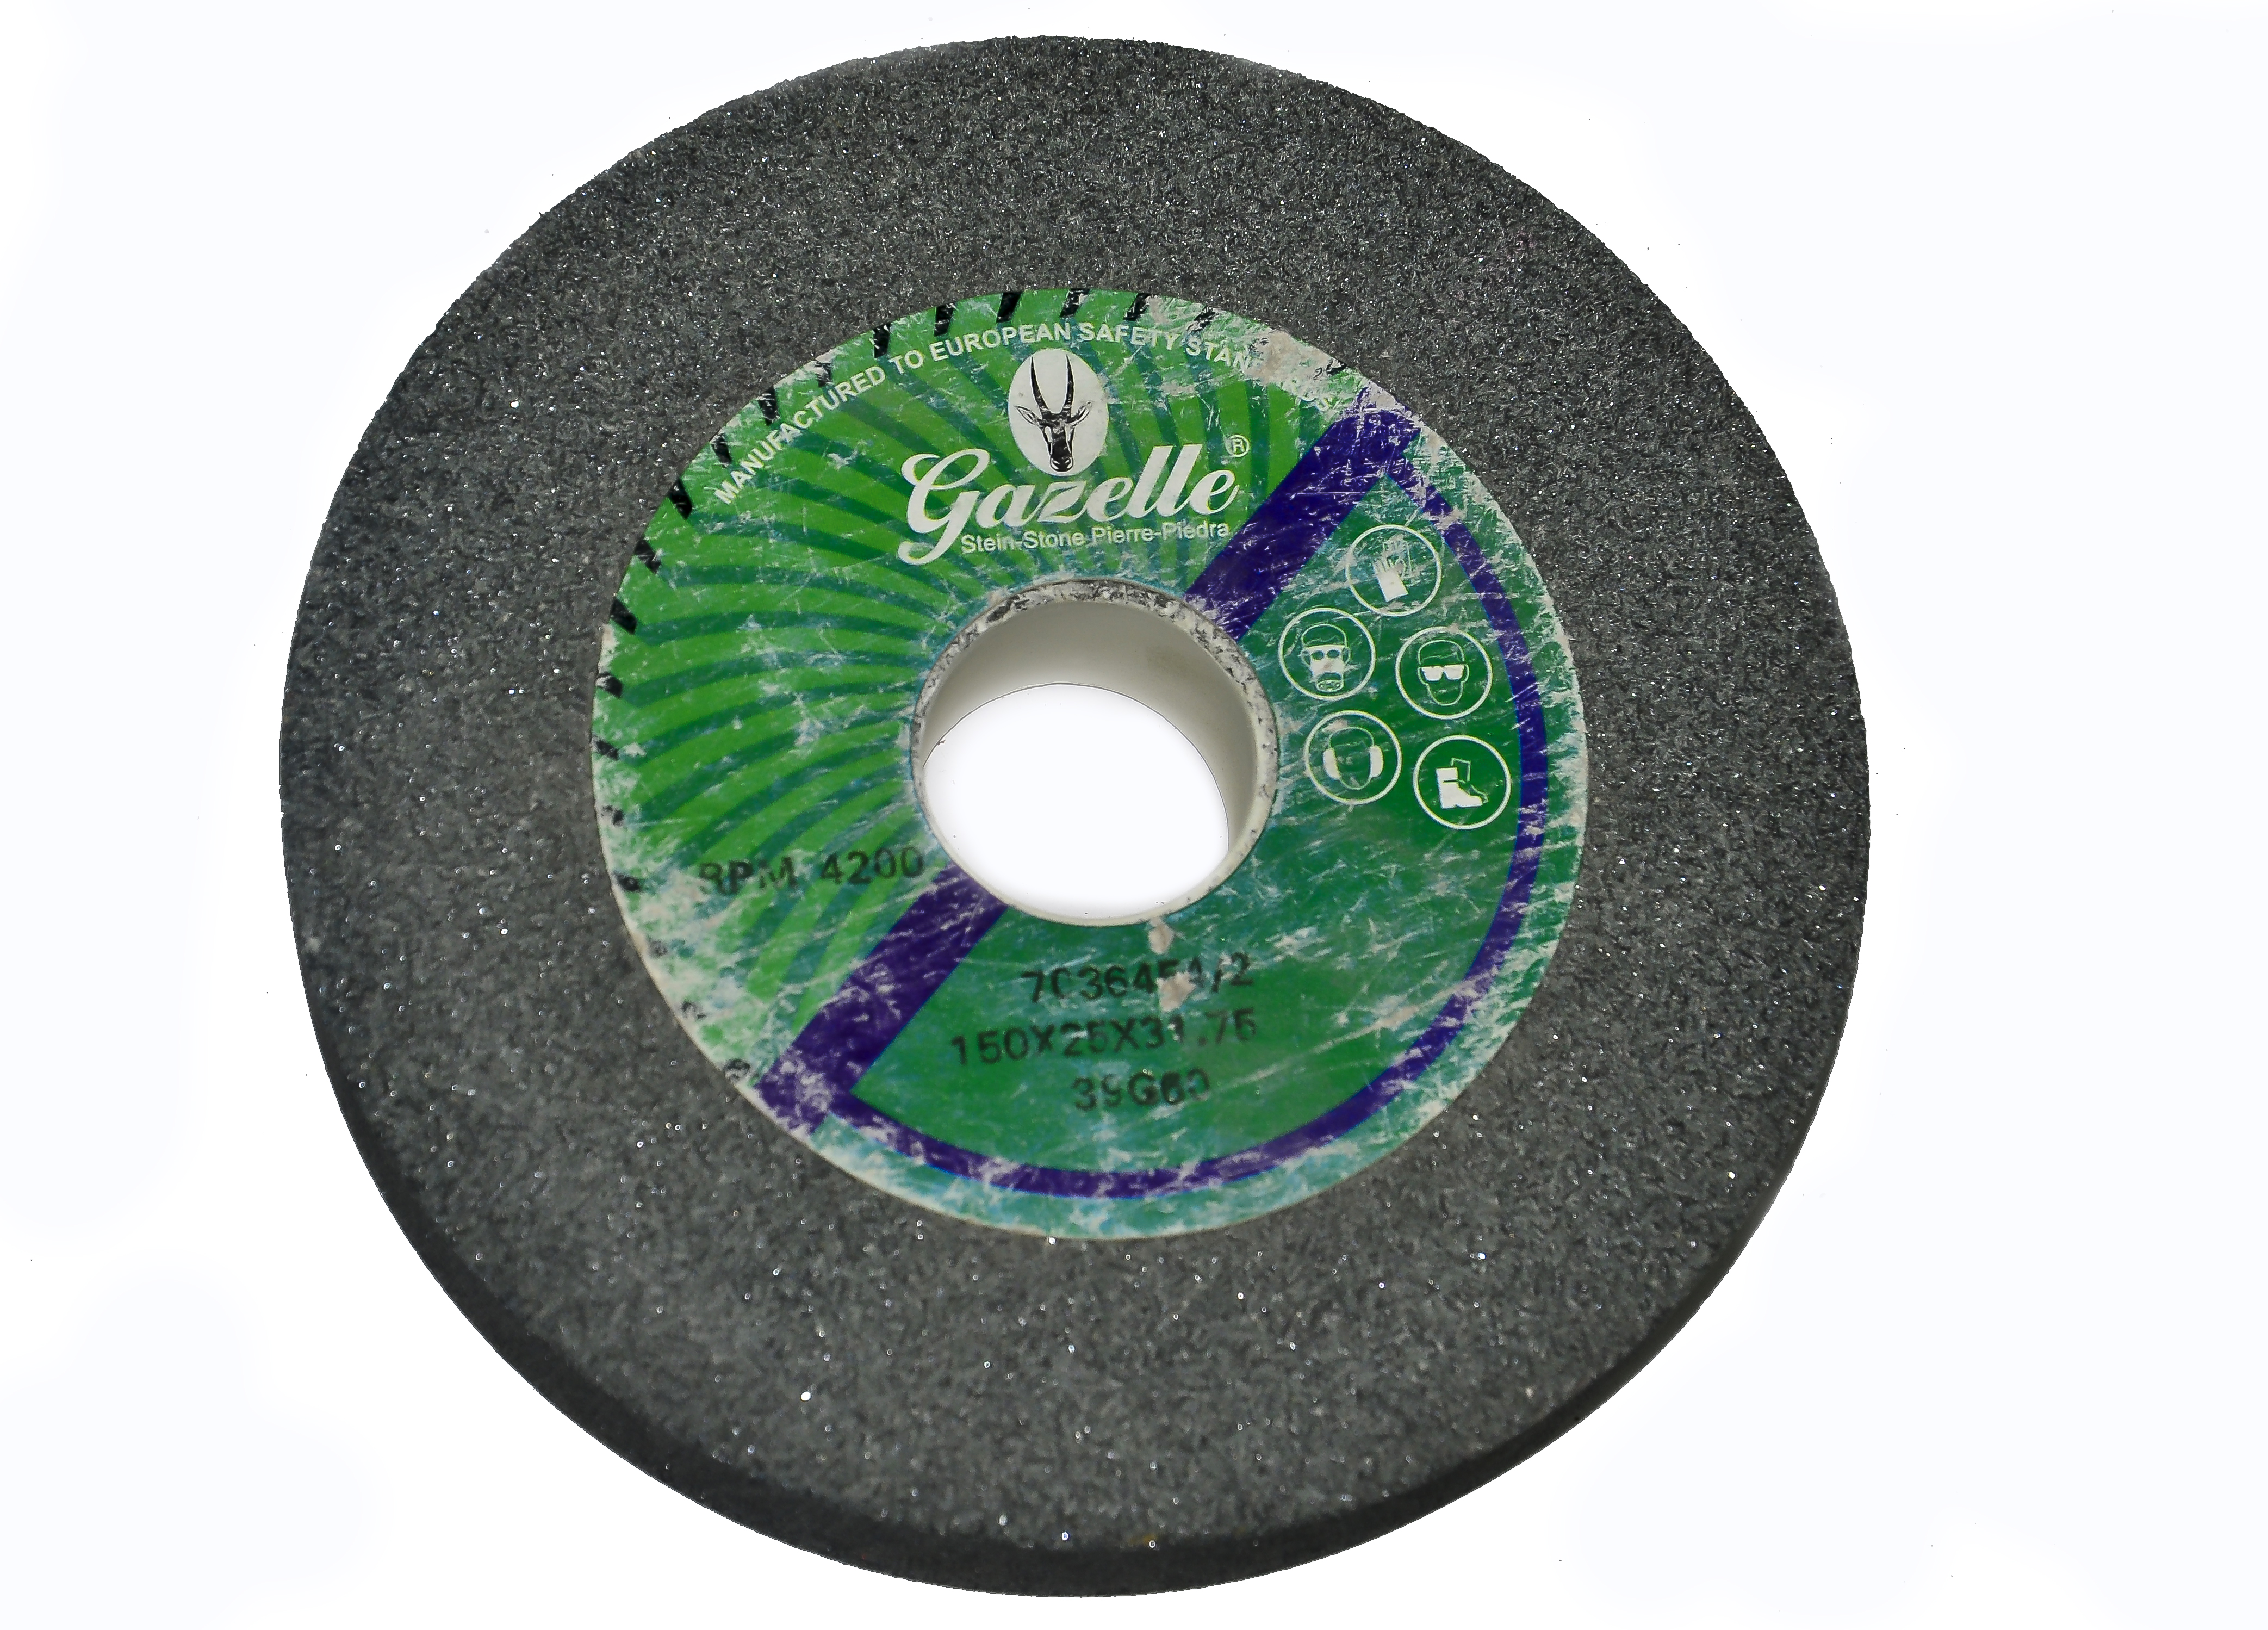 GAZELLE GAZ-15020-60B - Bench Grinding Wheels – Aluminium Oxide 150 x 20 x  31.75mm Medium